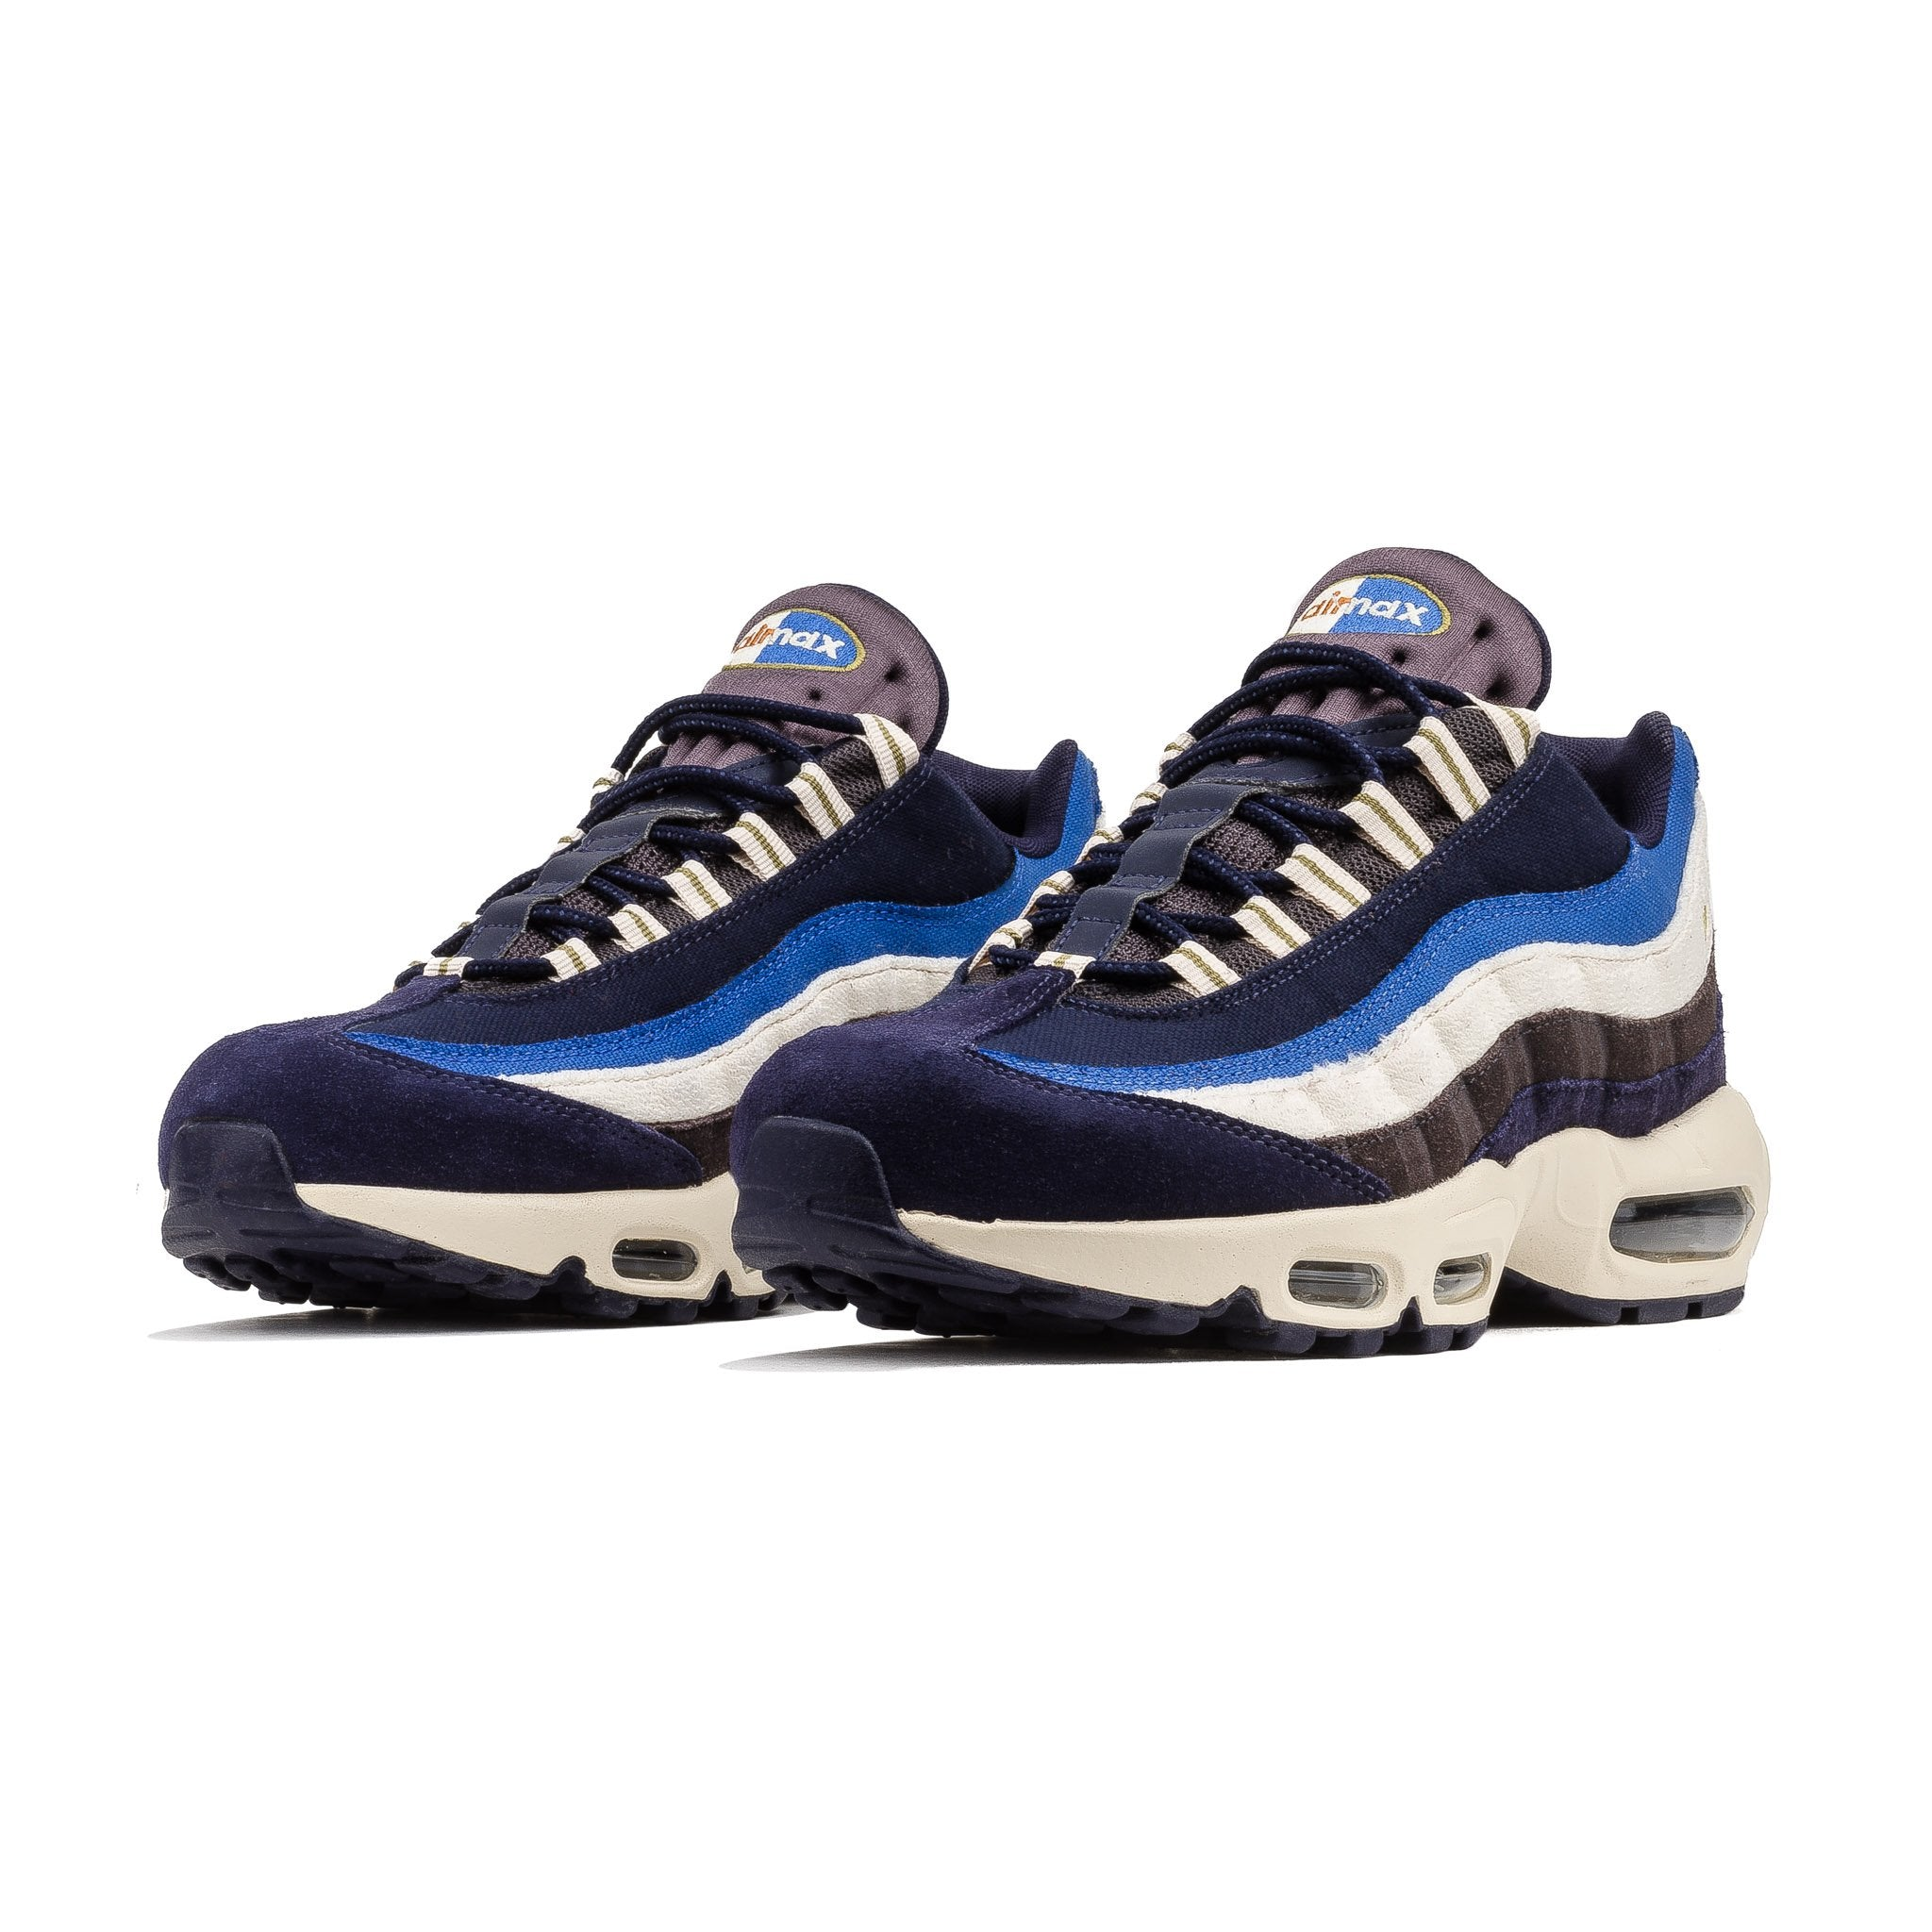 huge selection of 7efb4 29b0a Air Max 95 Premium 538416-404 Blackend Blue